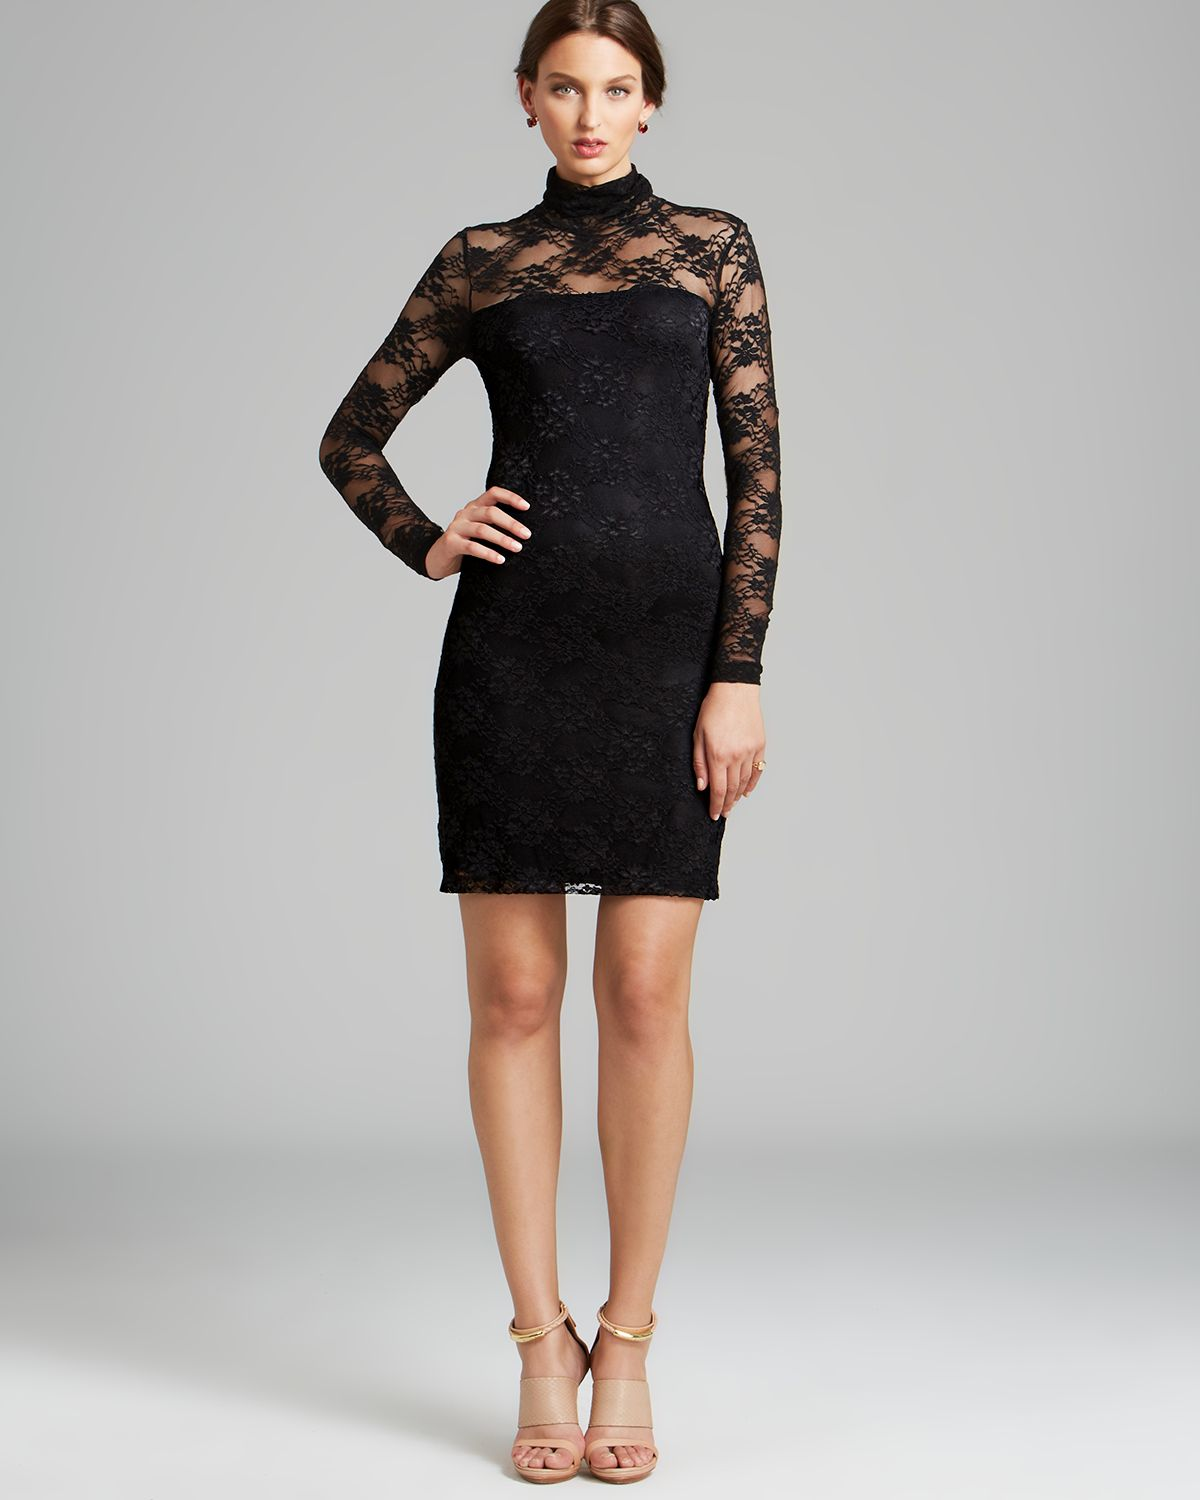 Free shipping BOTH ways on black lace turtleneck top, from our vast selection of styles. Fast delivery, and 24/7/ real-person service with a smile. Click or call